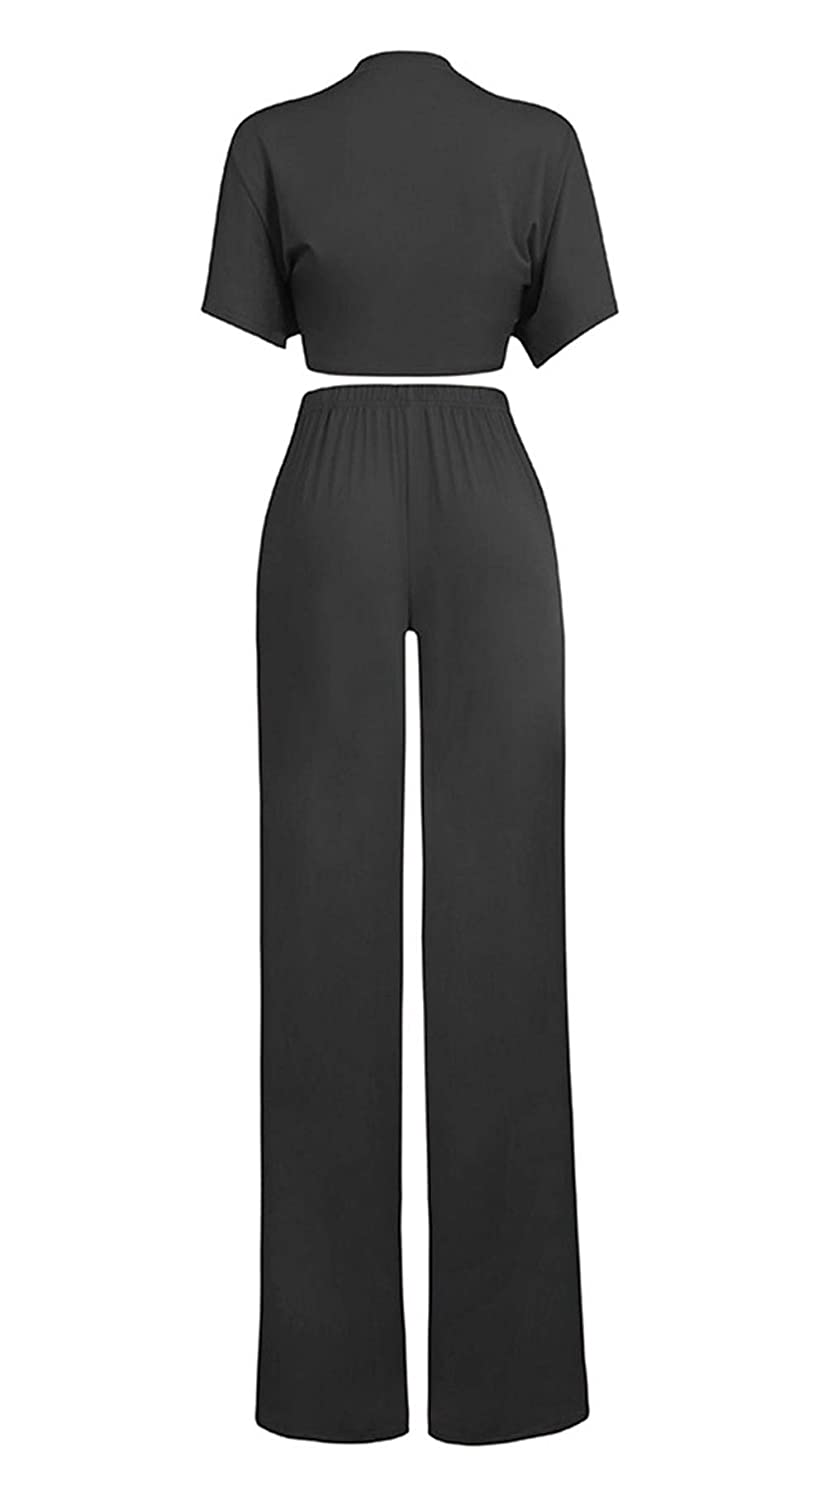 10370a41561 Amazon.com  Women s One Two Piece Outfits Set Solid Tie Knot Front Crop Top  Wide Leg Flare Pants Plus Size  Clothing